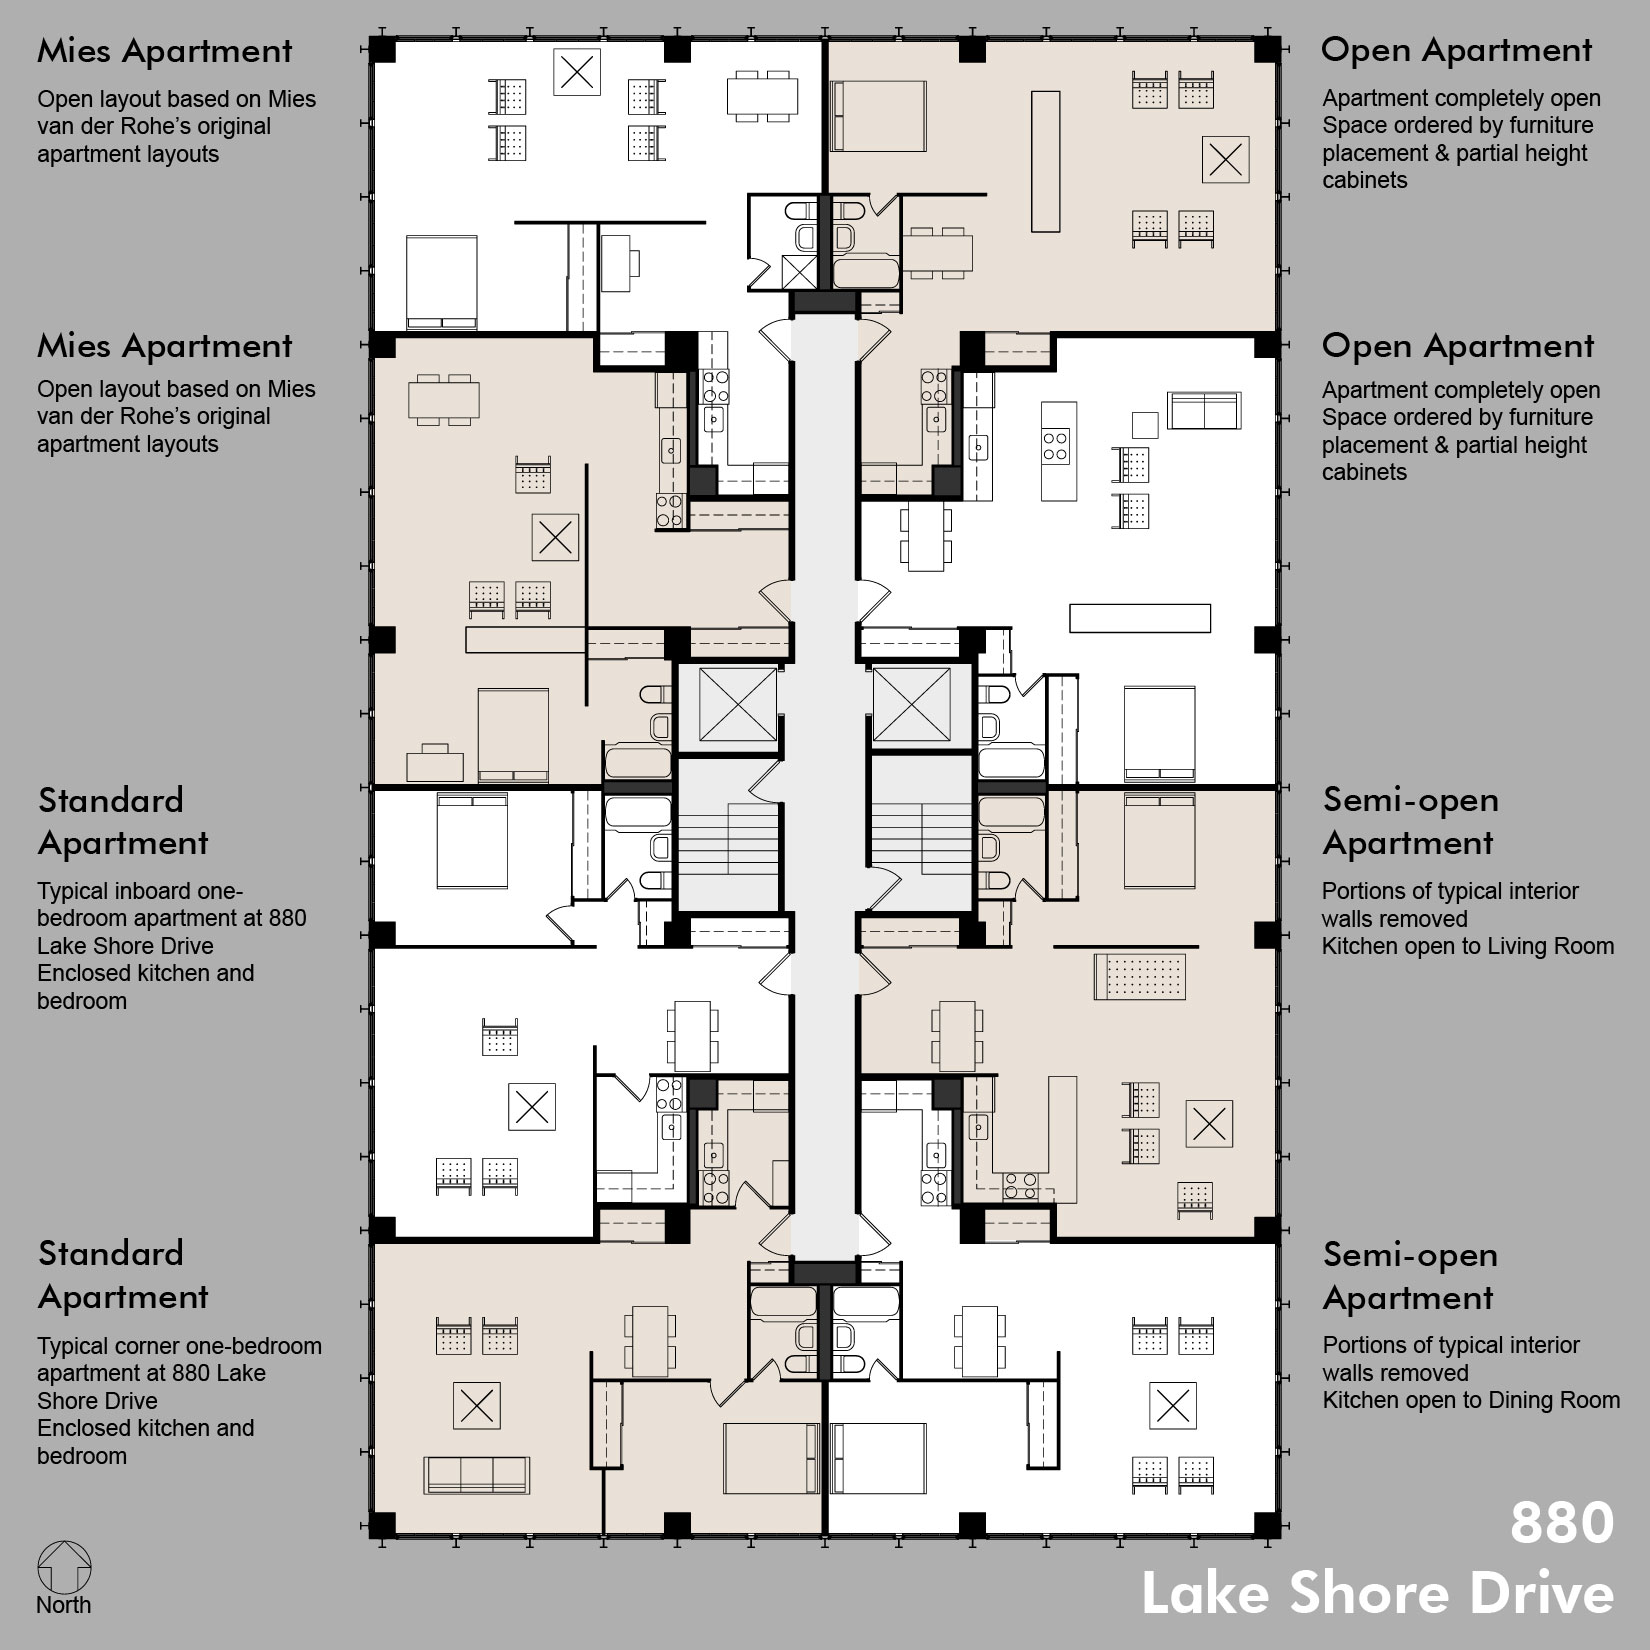 Flat Roof House Floor Plans Home Photo Style as well Courtyard House Plans Idyllic Interior Courtyard Plan likewise 5a8065feaaadea0f additionally Plan details also 309059593148291159. on deck ideas for ranch style homes